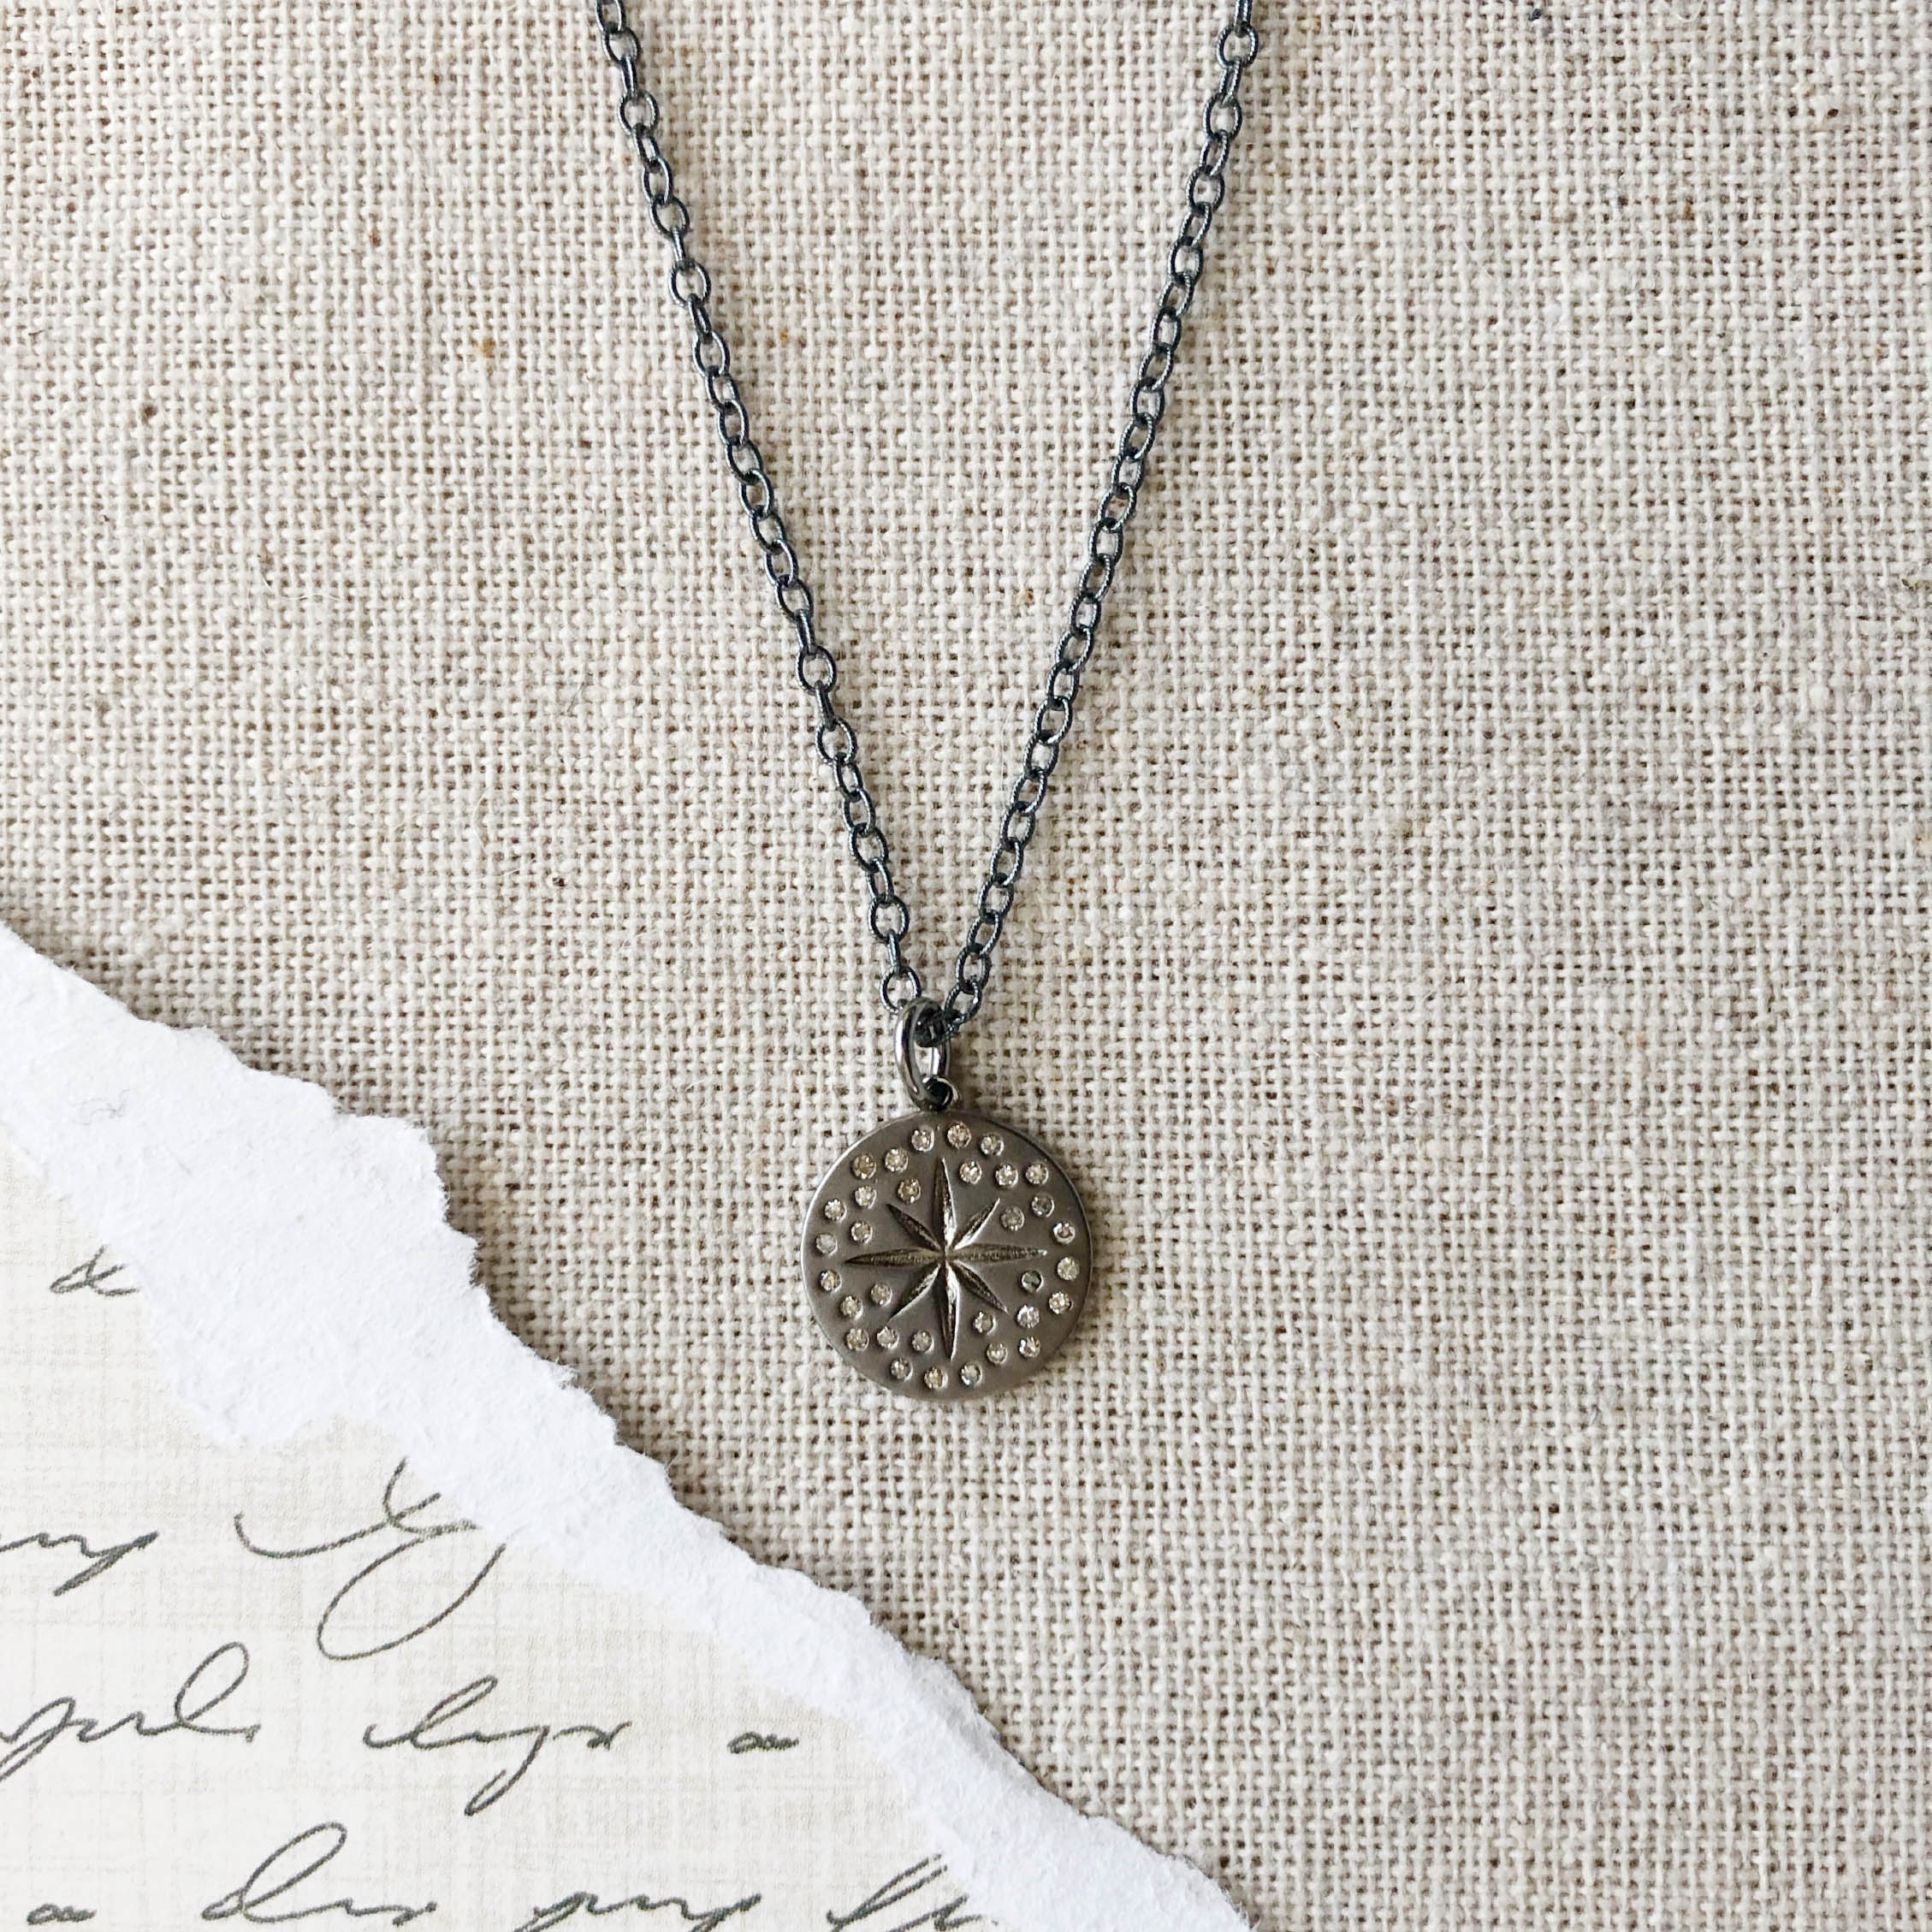 chronicles frivolity spring julie giveaway of changes necklace vos mg